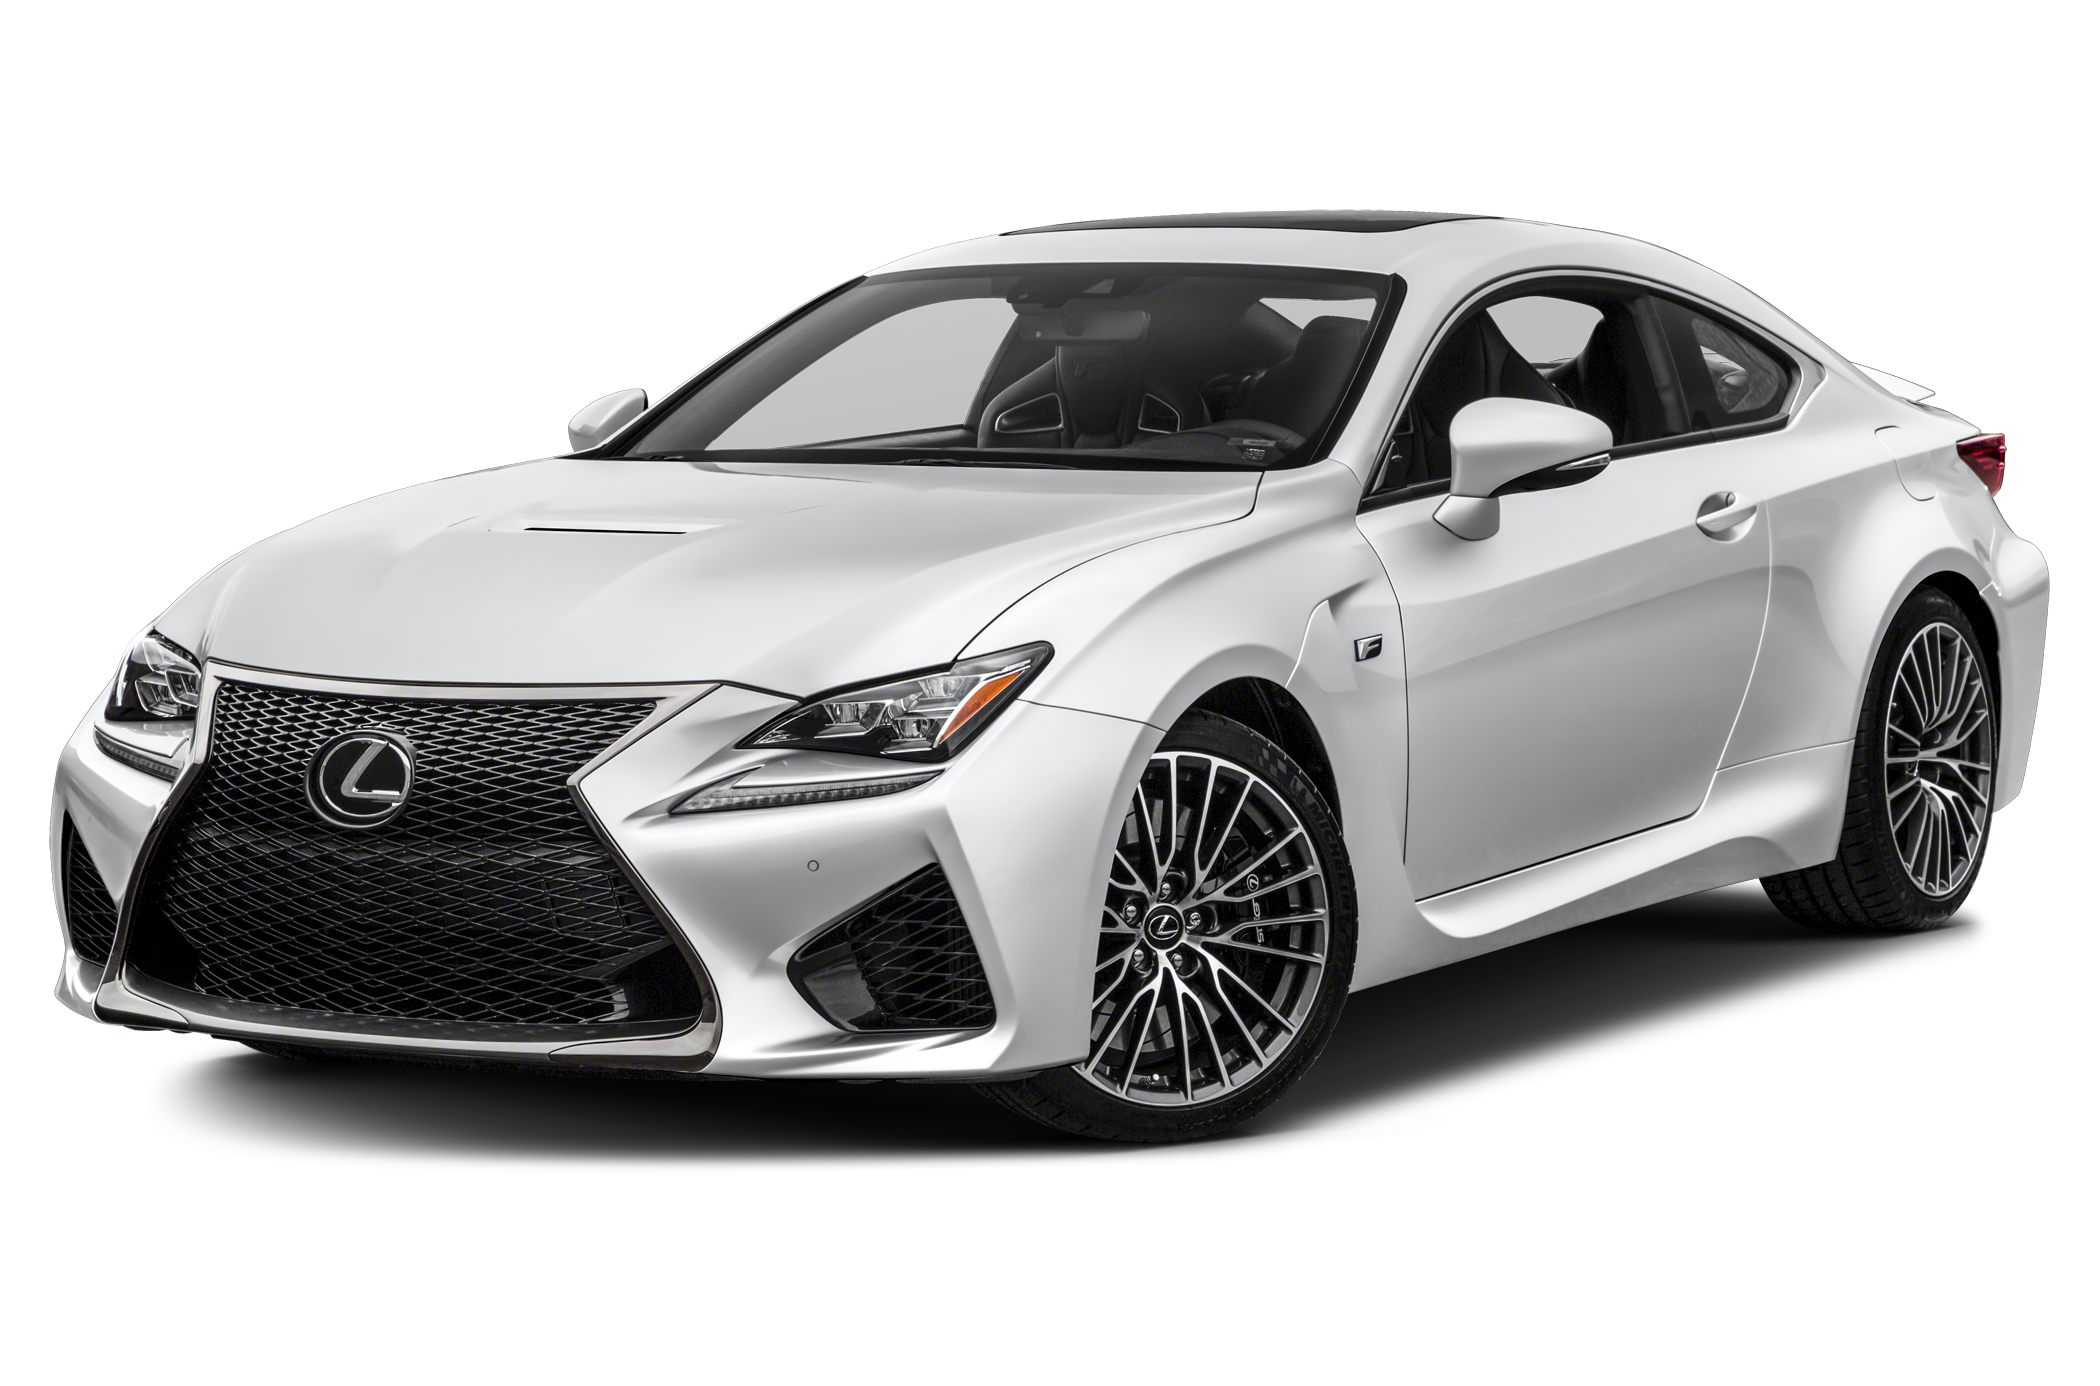 2015 Lexus RC F Base Coupe for sale in Little Rock for $72,574 with 0 miles